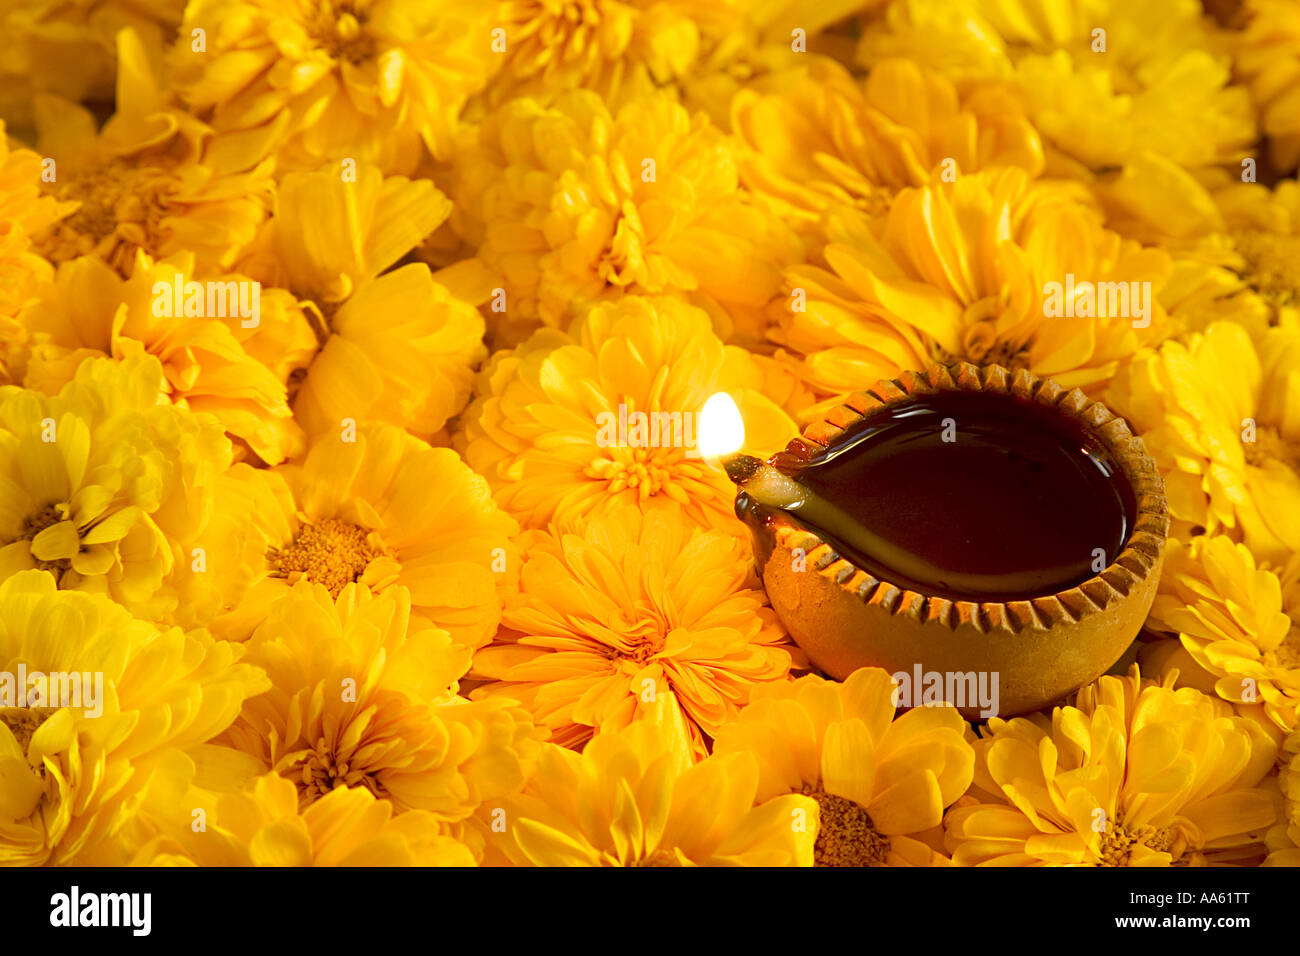 Hybrid zinnia flowers yellow color and auspicious clay oil lamp to hybrid zinnia flowers yellow color and auspicious clay oil lamp to celebrate diwali indian festival of lights in india asia dhlflorist Image collections